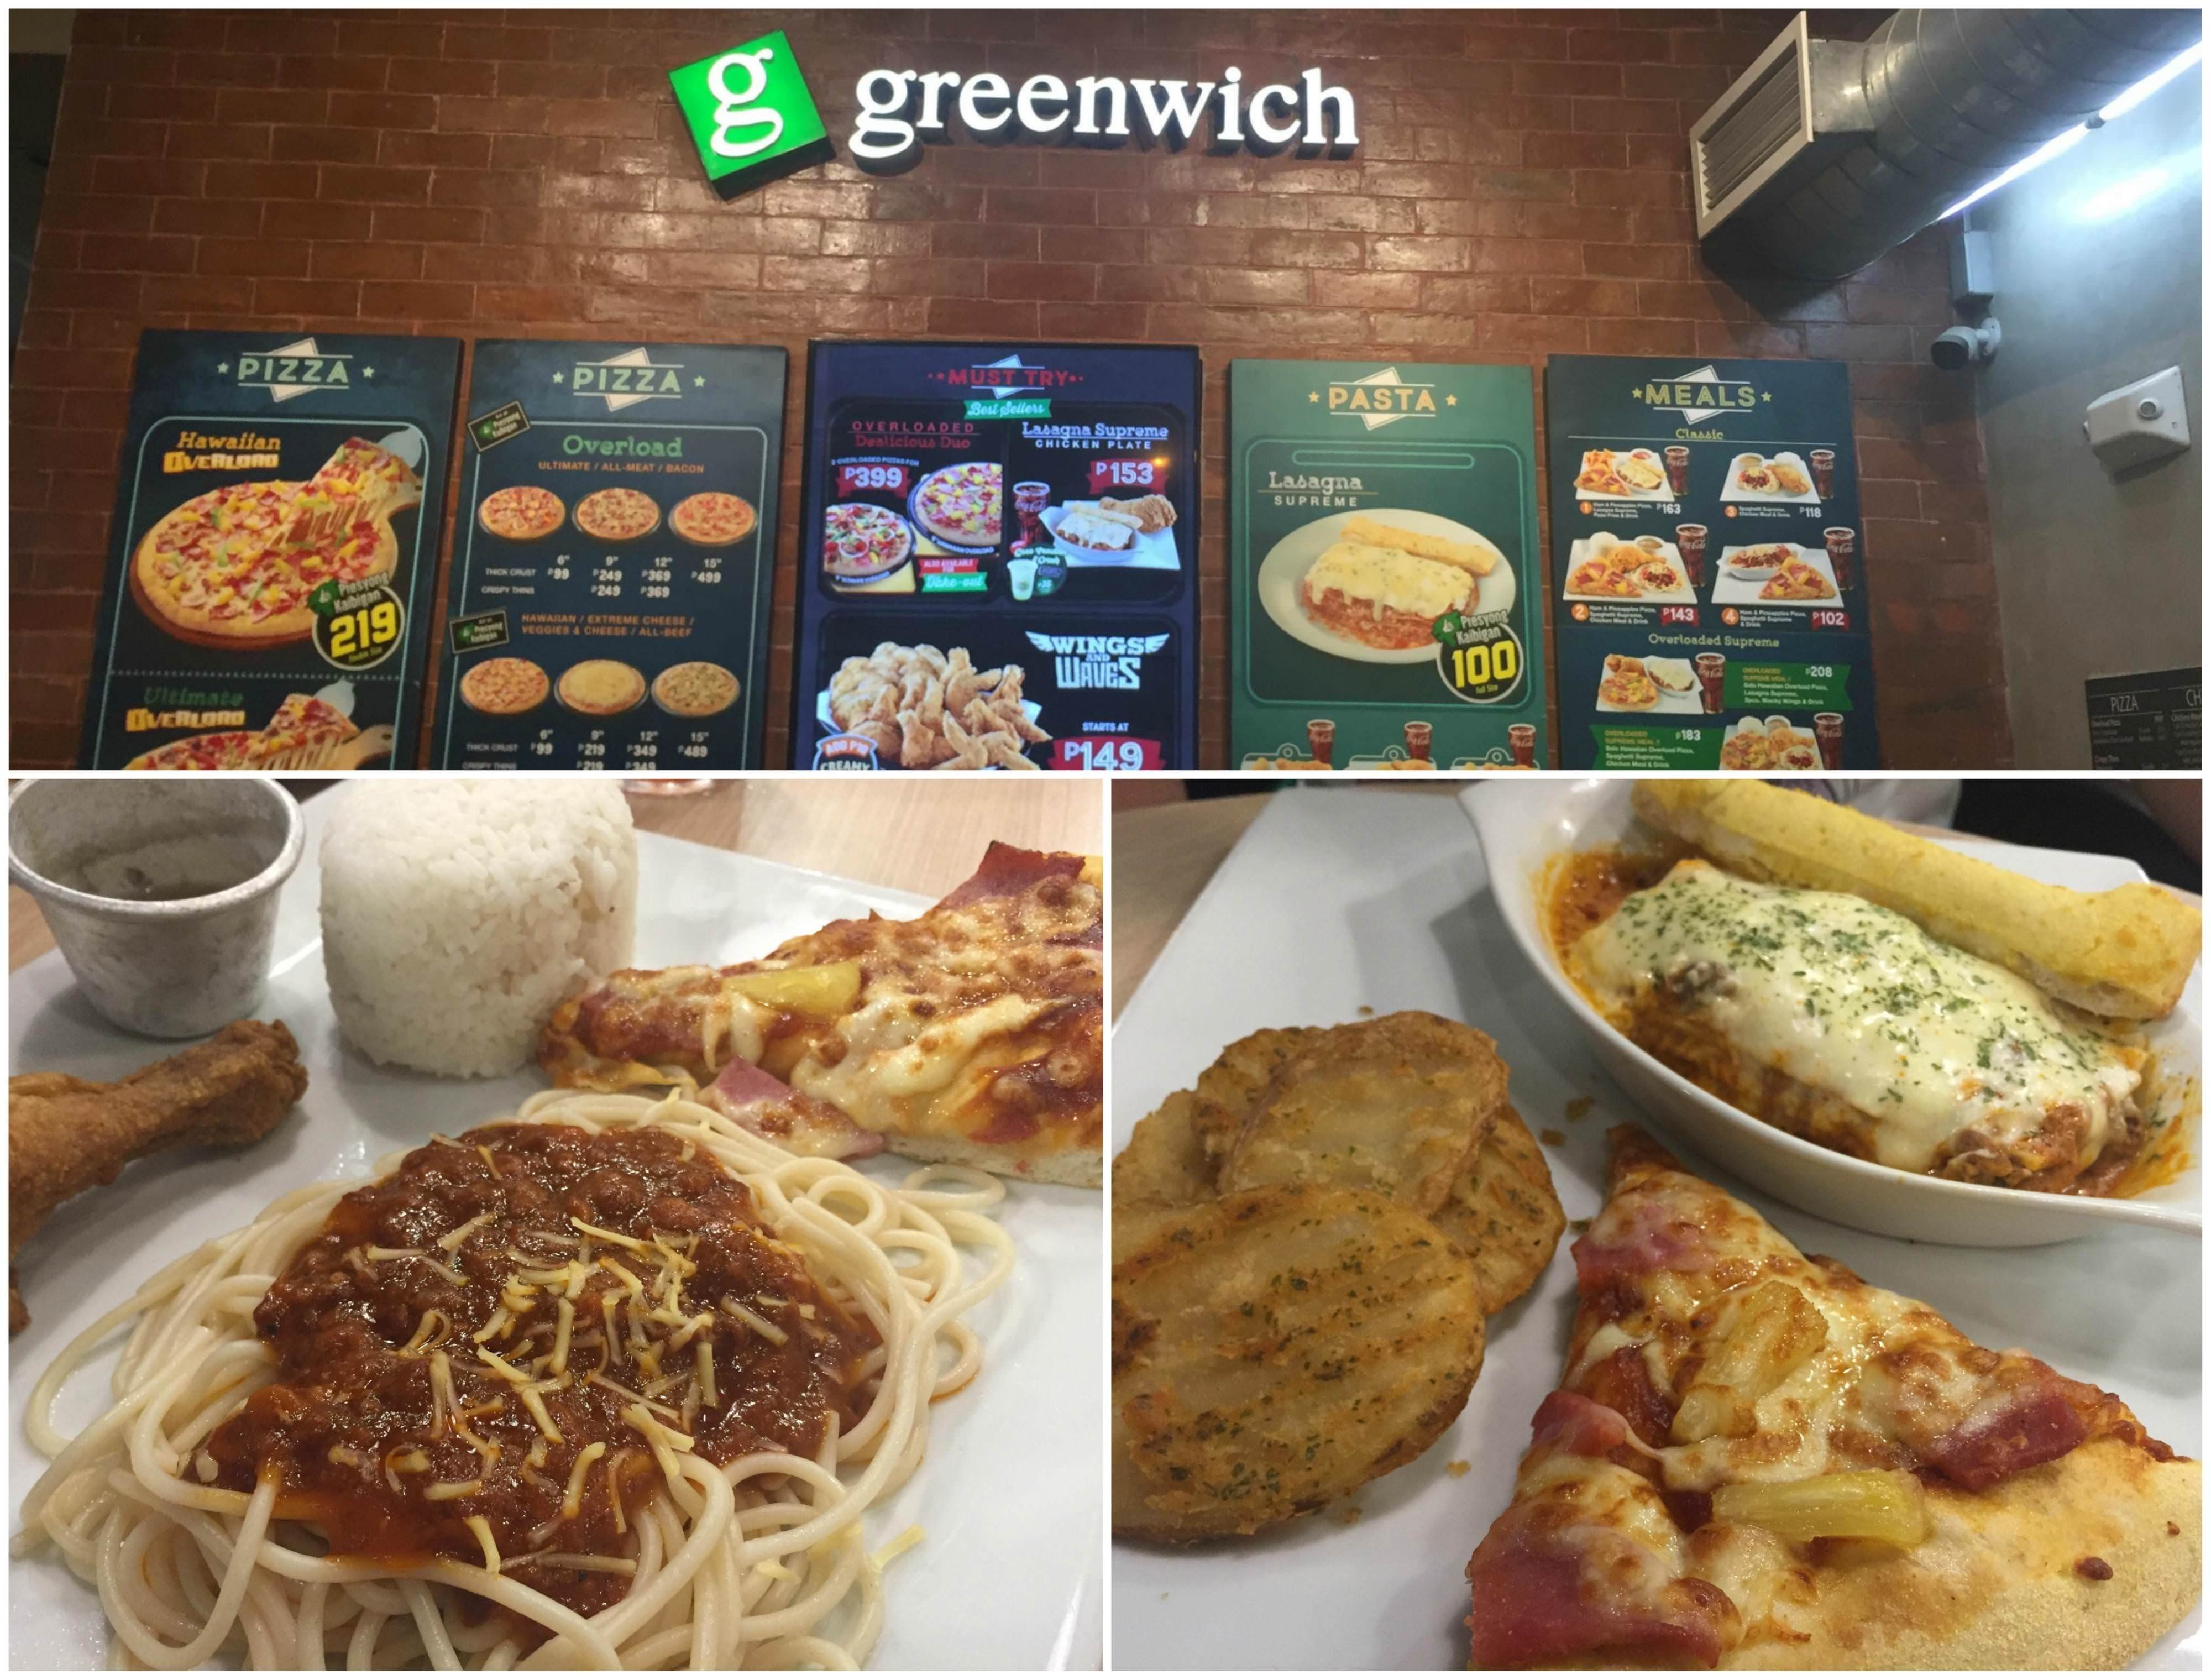 How To Franchise Greenwich Pizza Business News Philippines